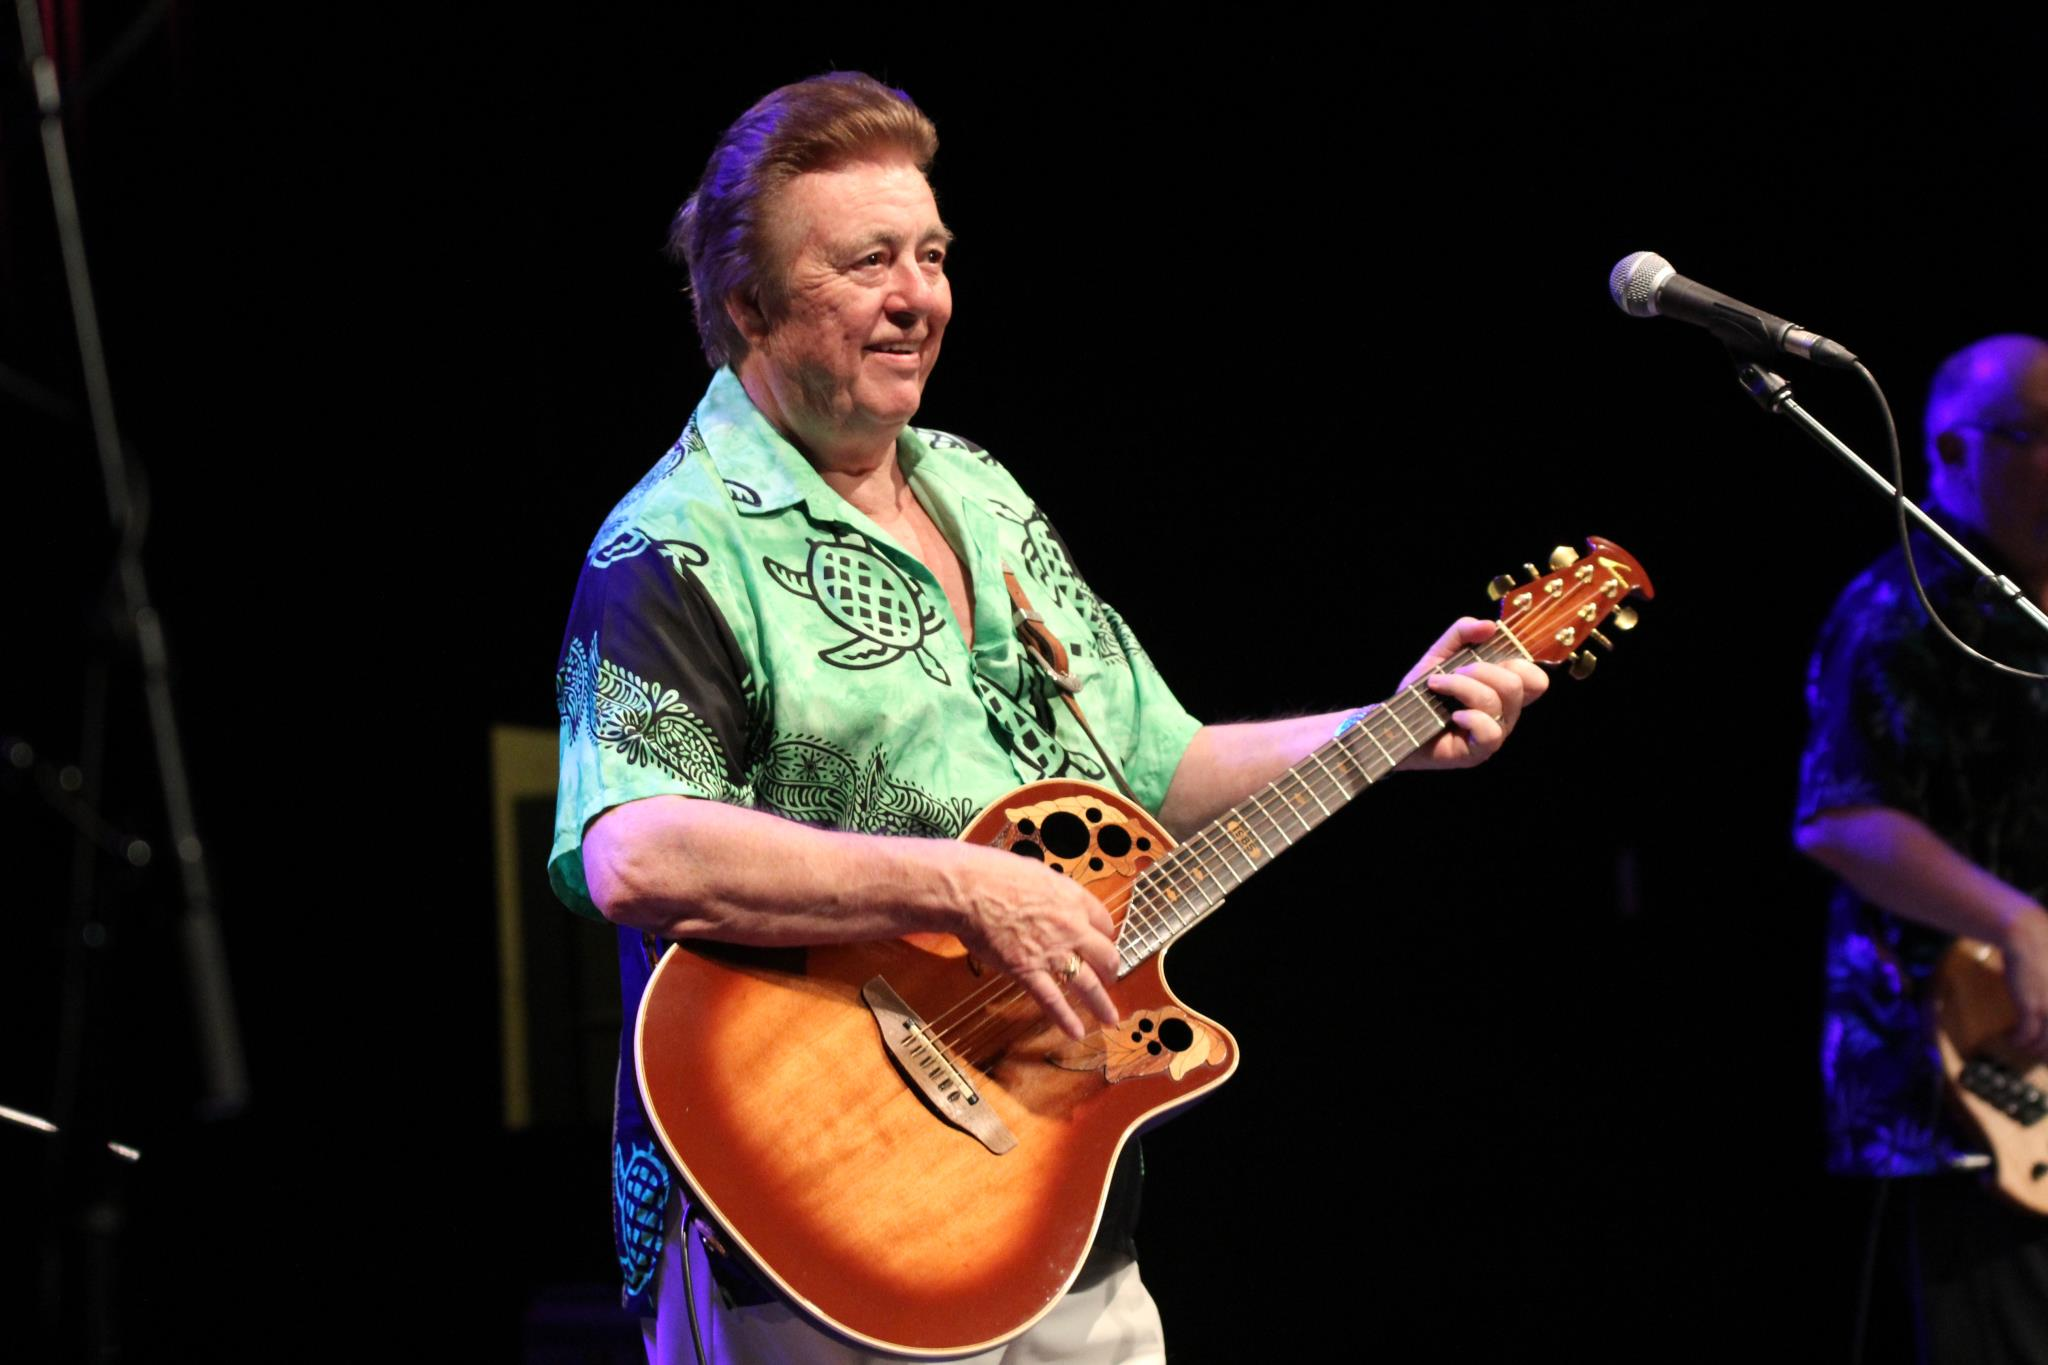 Musician Ray St. Germain at Lyric Theatre